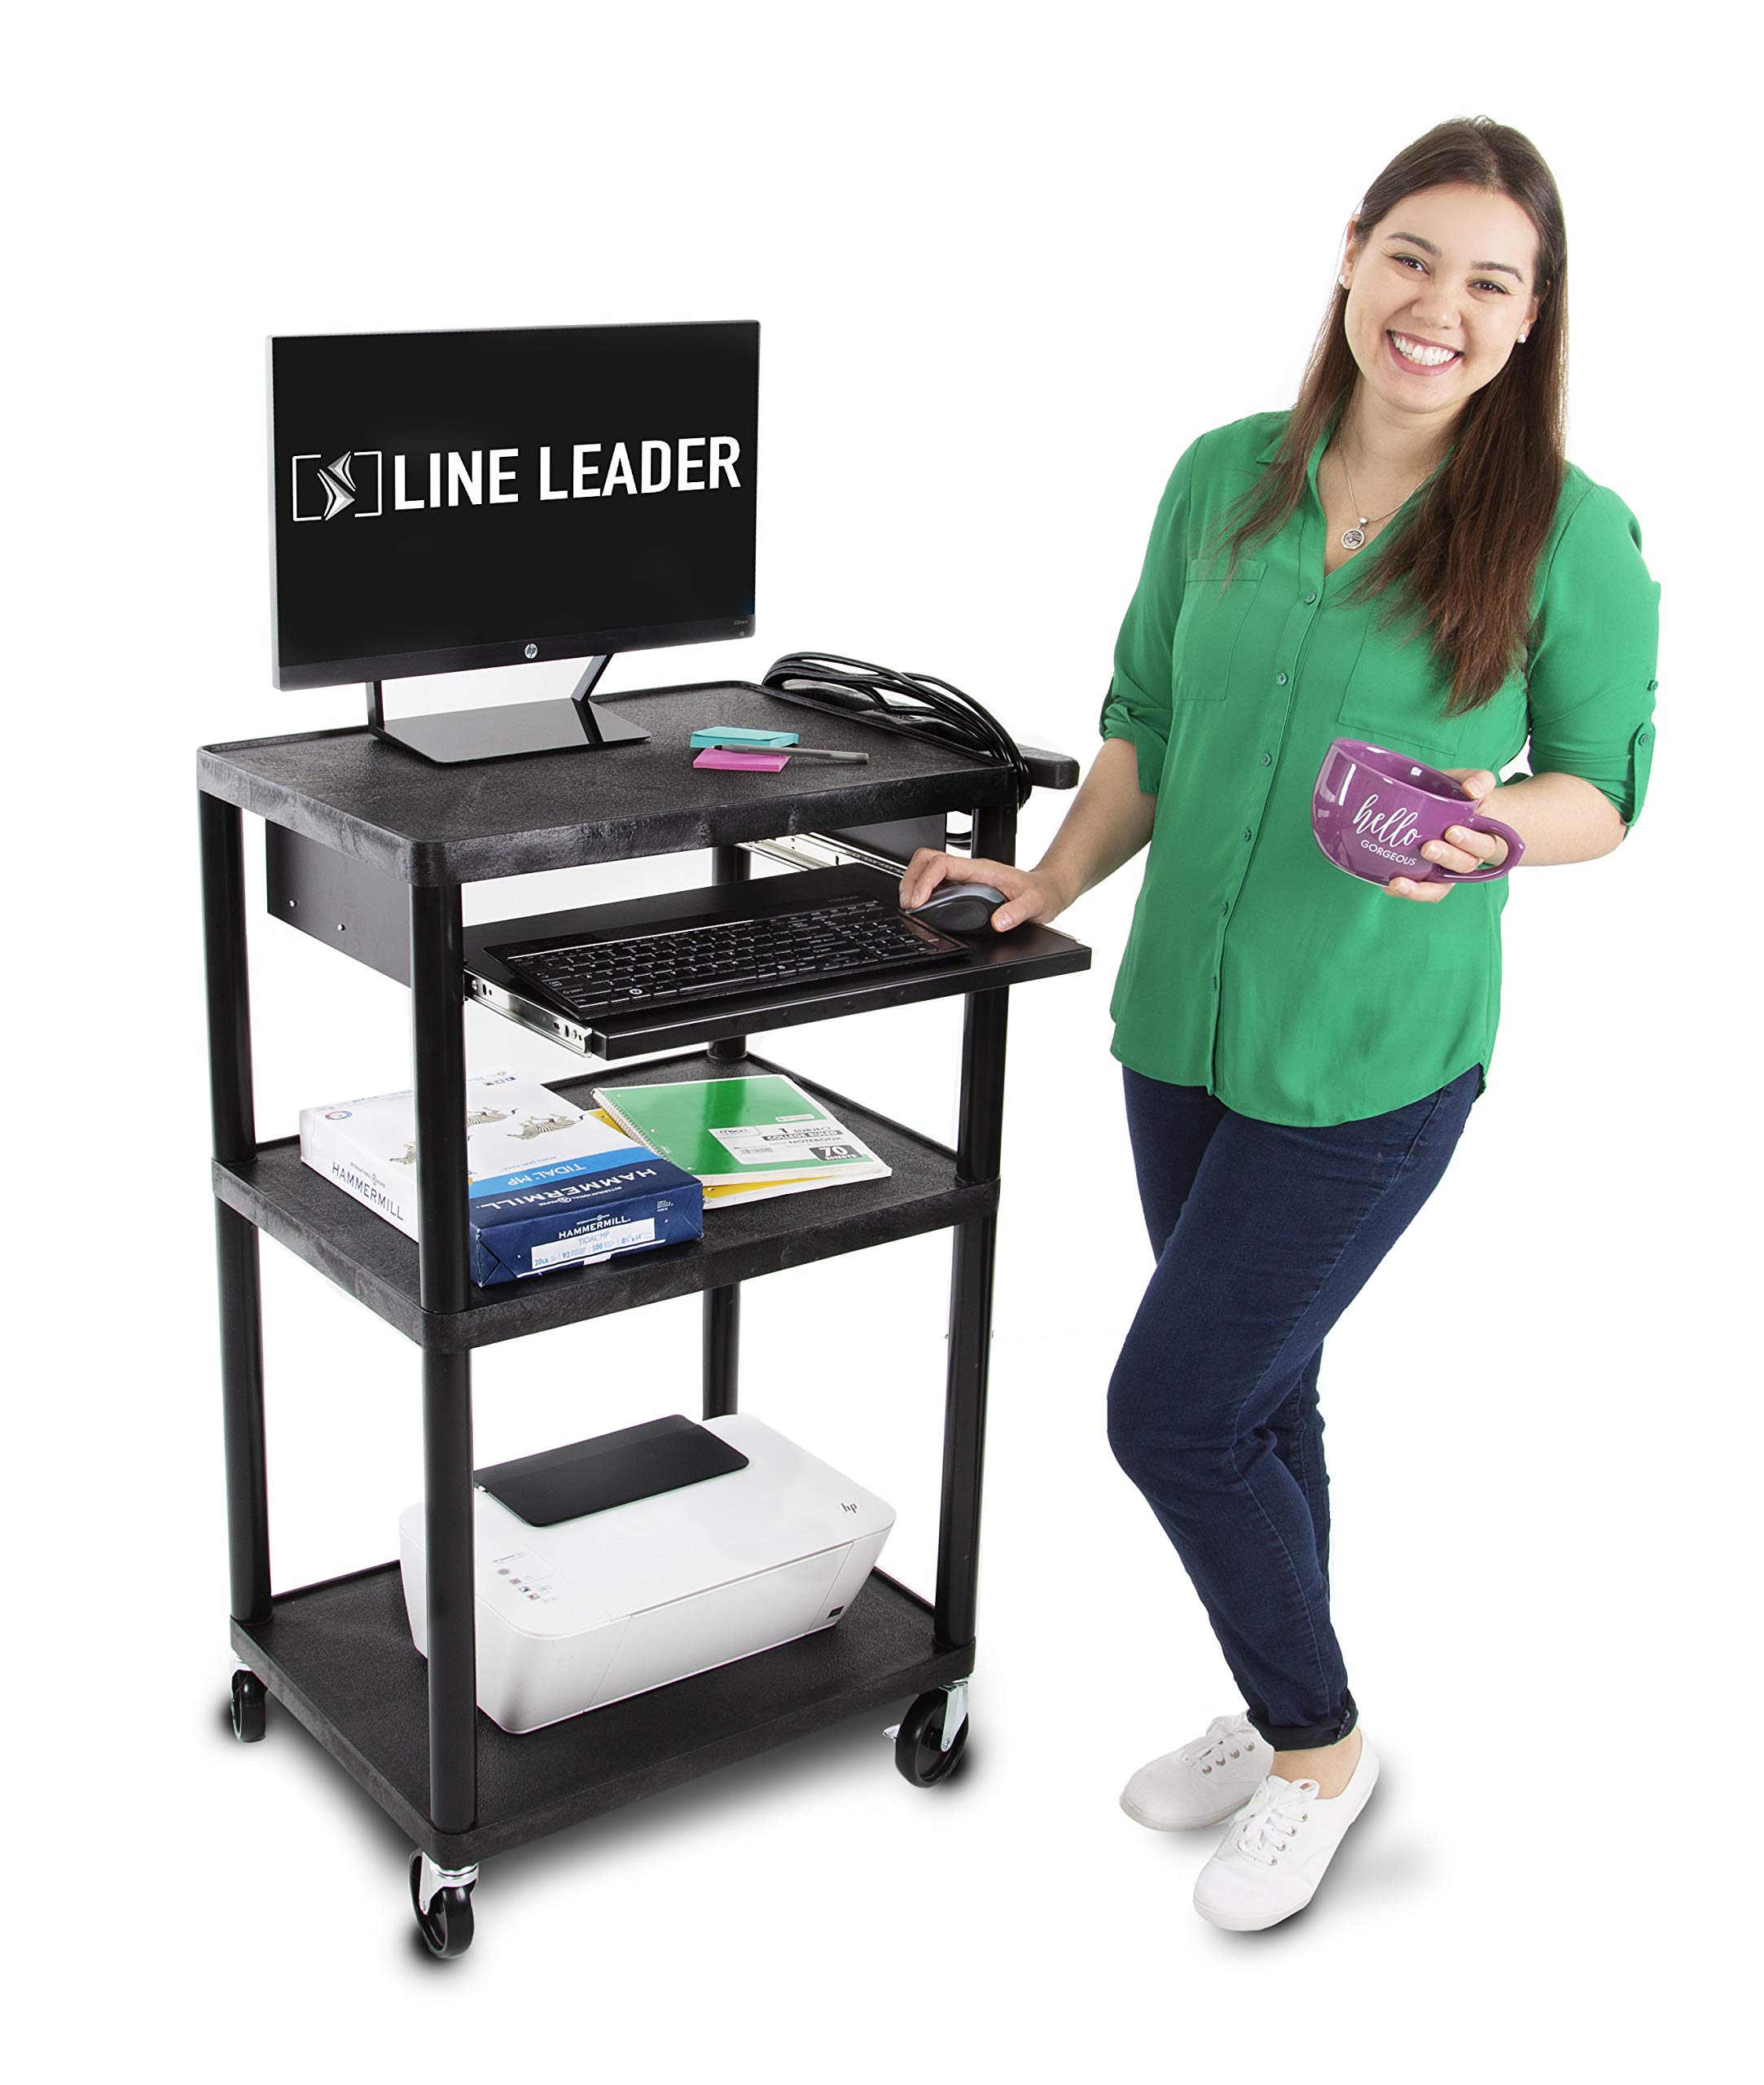 Line Leader Plastic AV Cart with Keyboard Tray - Mobile Workstation with 4 Rolling Casters and 2 Locking Brakes- Heavy Duty, Holds up to 400 lbs- Perfect for Offices and Schools (Black / 24 x 18 x 42) by Stand Steady